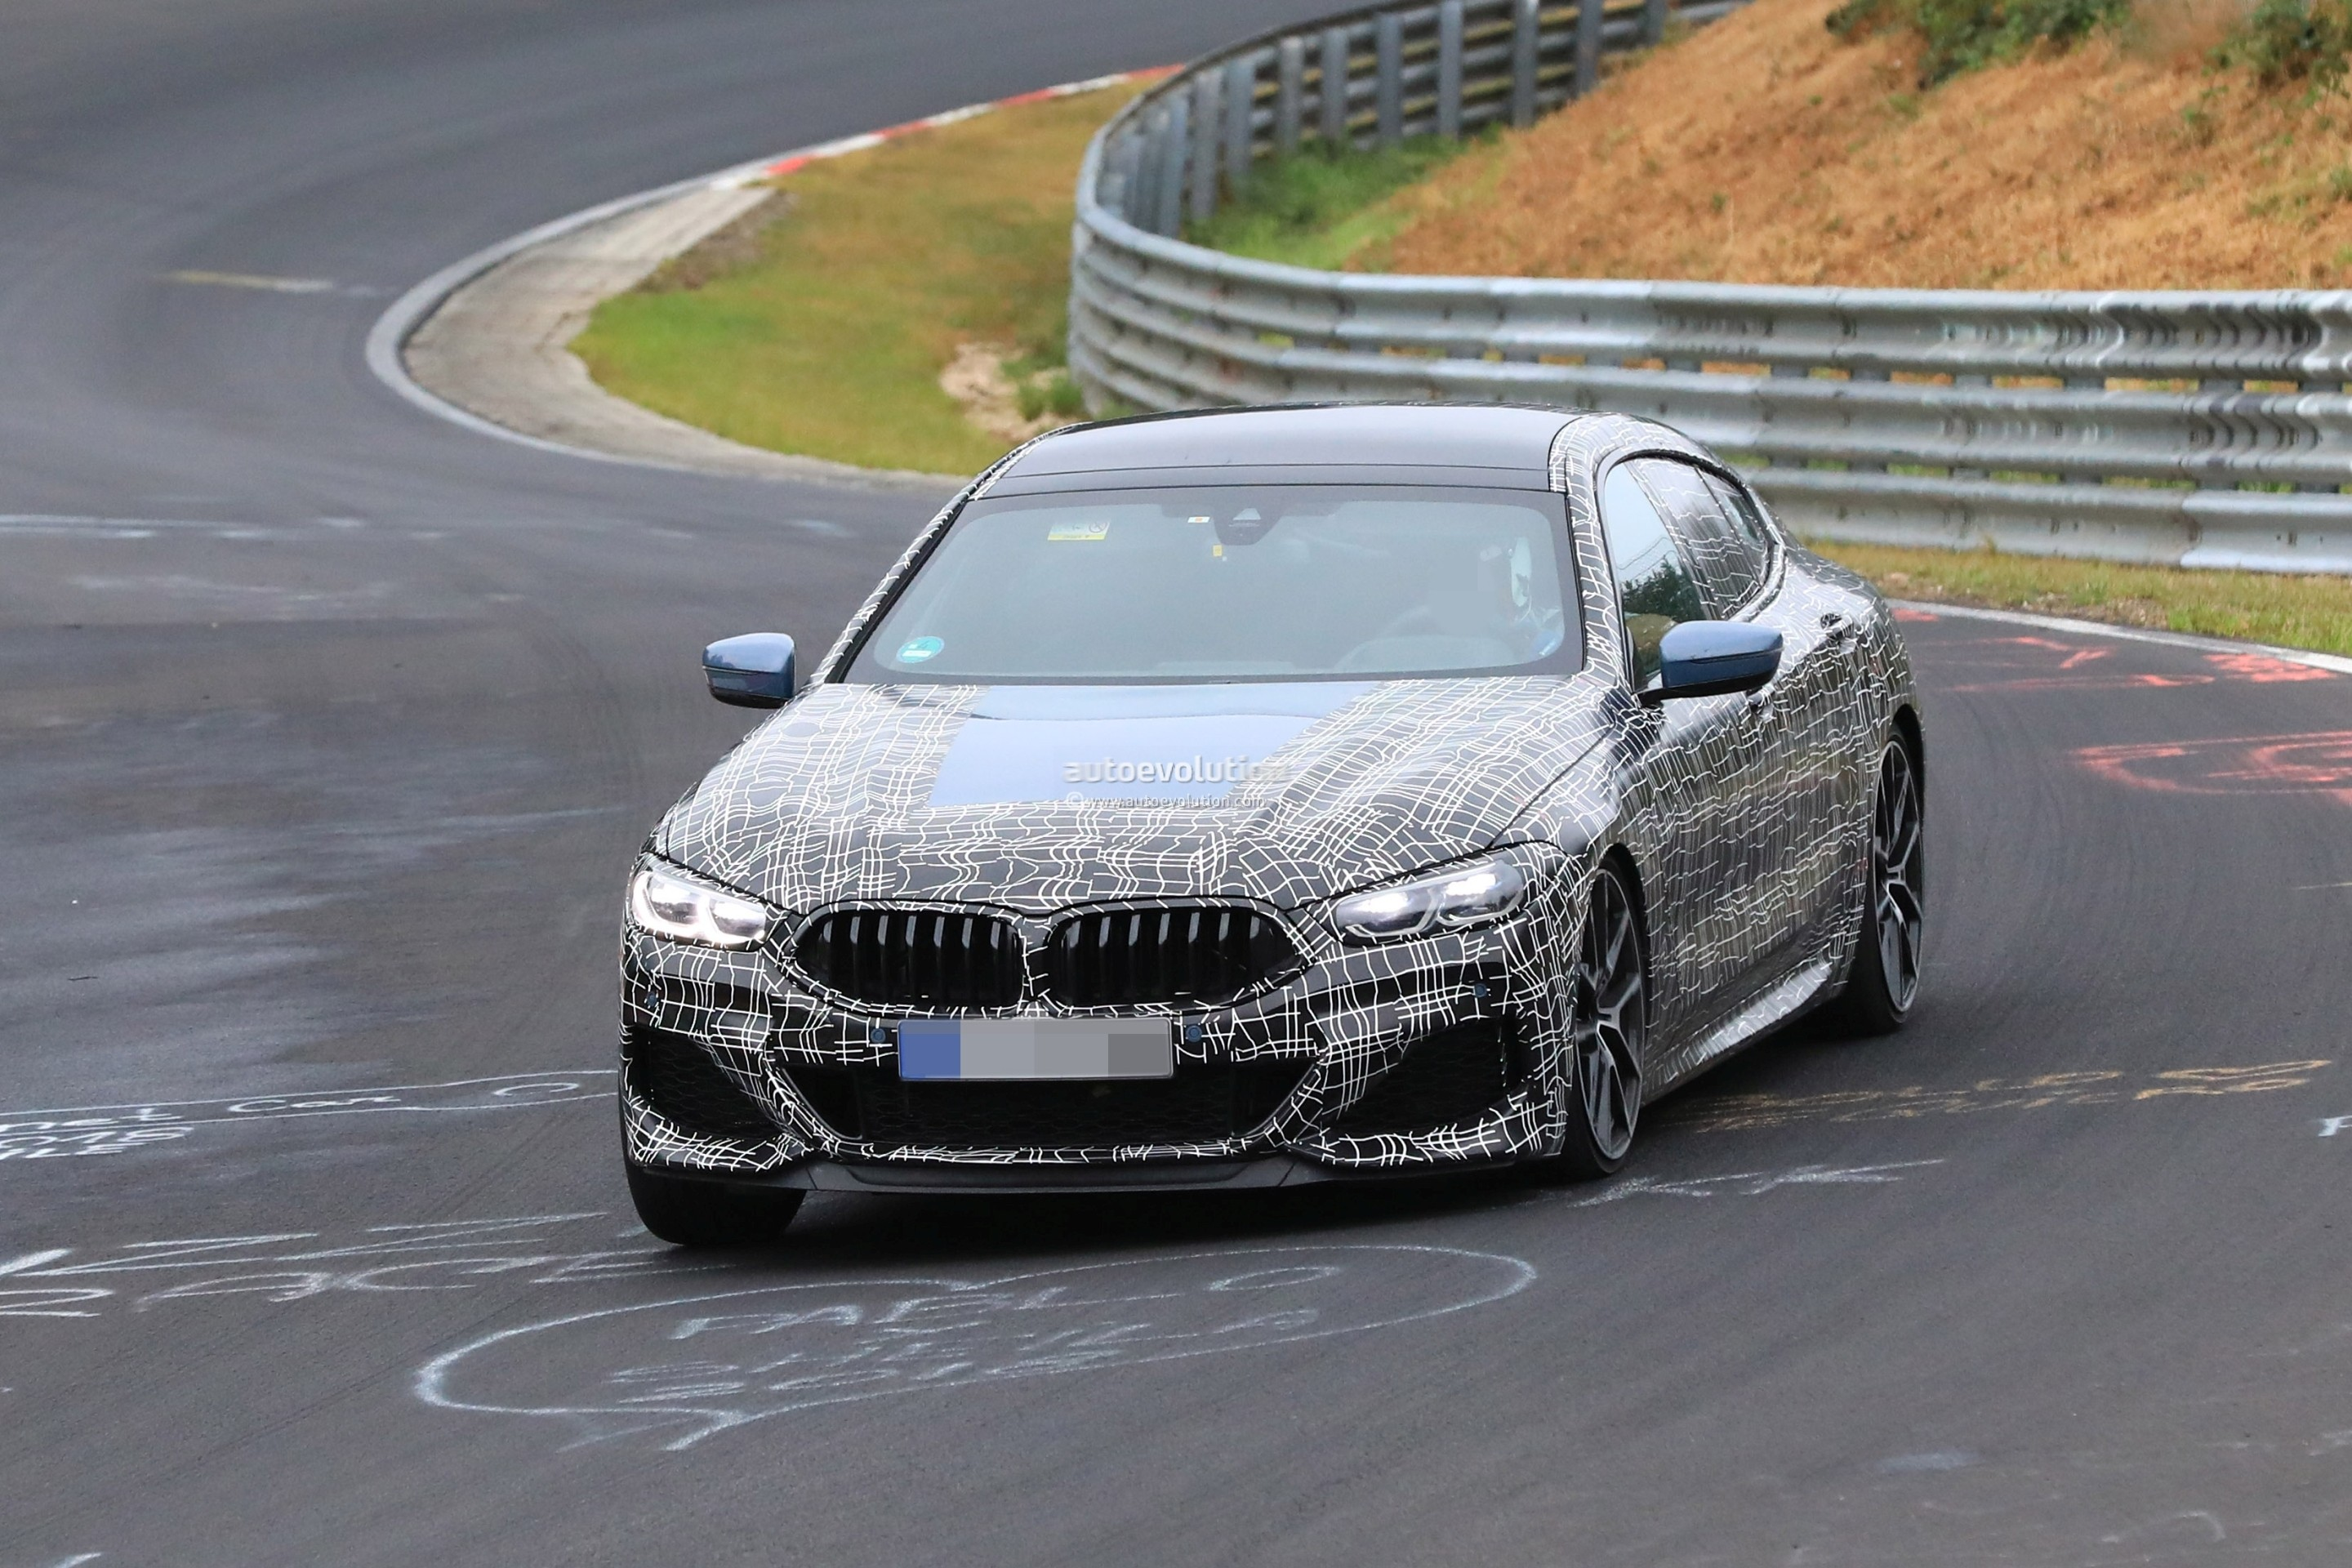 2020 bmw m850i gran coupe hits nurburgring  out for mercedes-amg gt 4-door blood